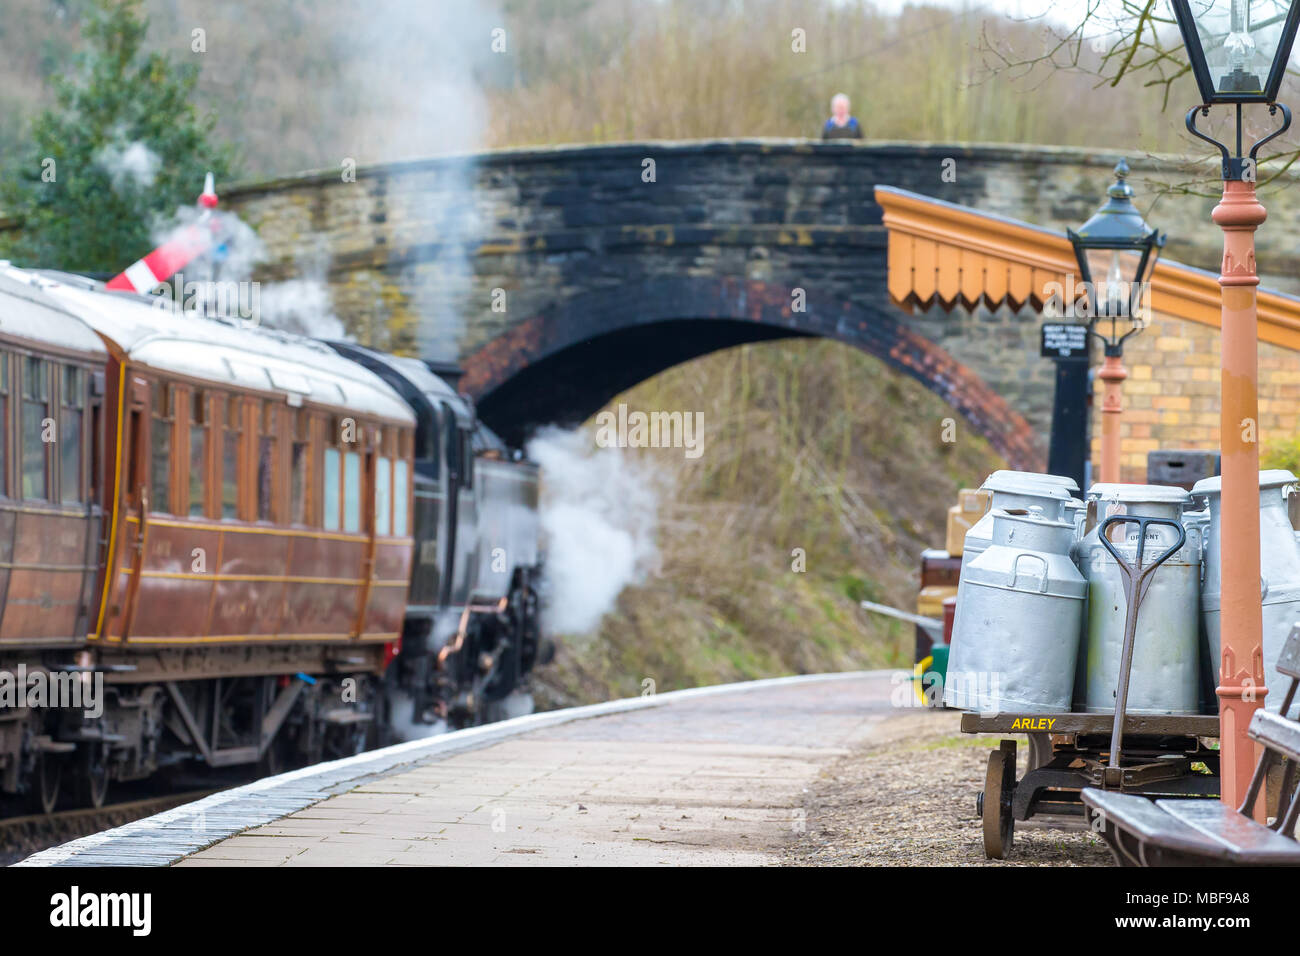 Milk churns (period artefacts) on platform of Severn Valley Railway Arley station. A steam locomotive travels past as a man views from bridge above. - Stock Image